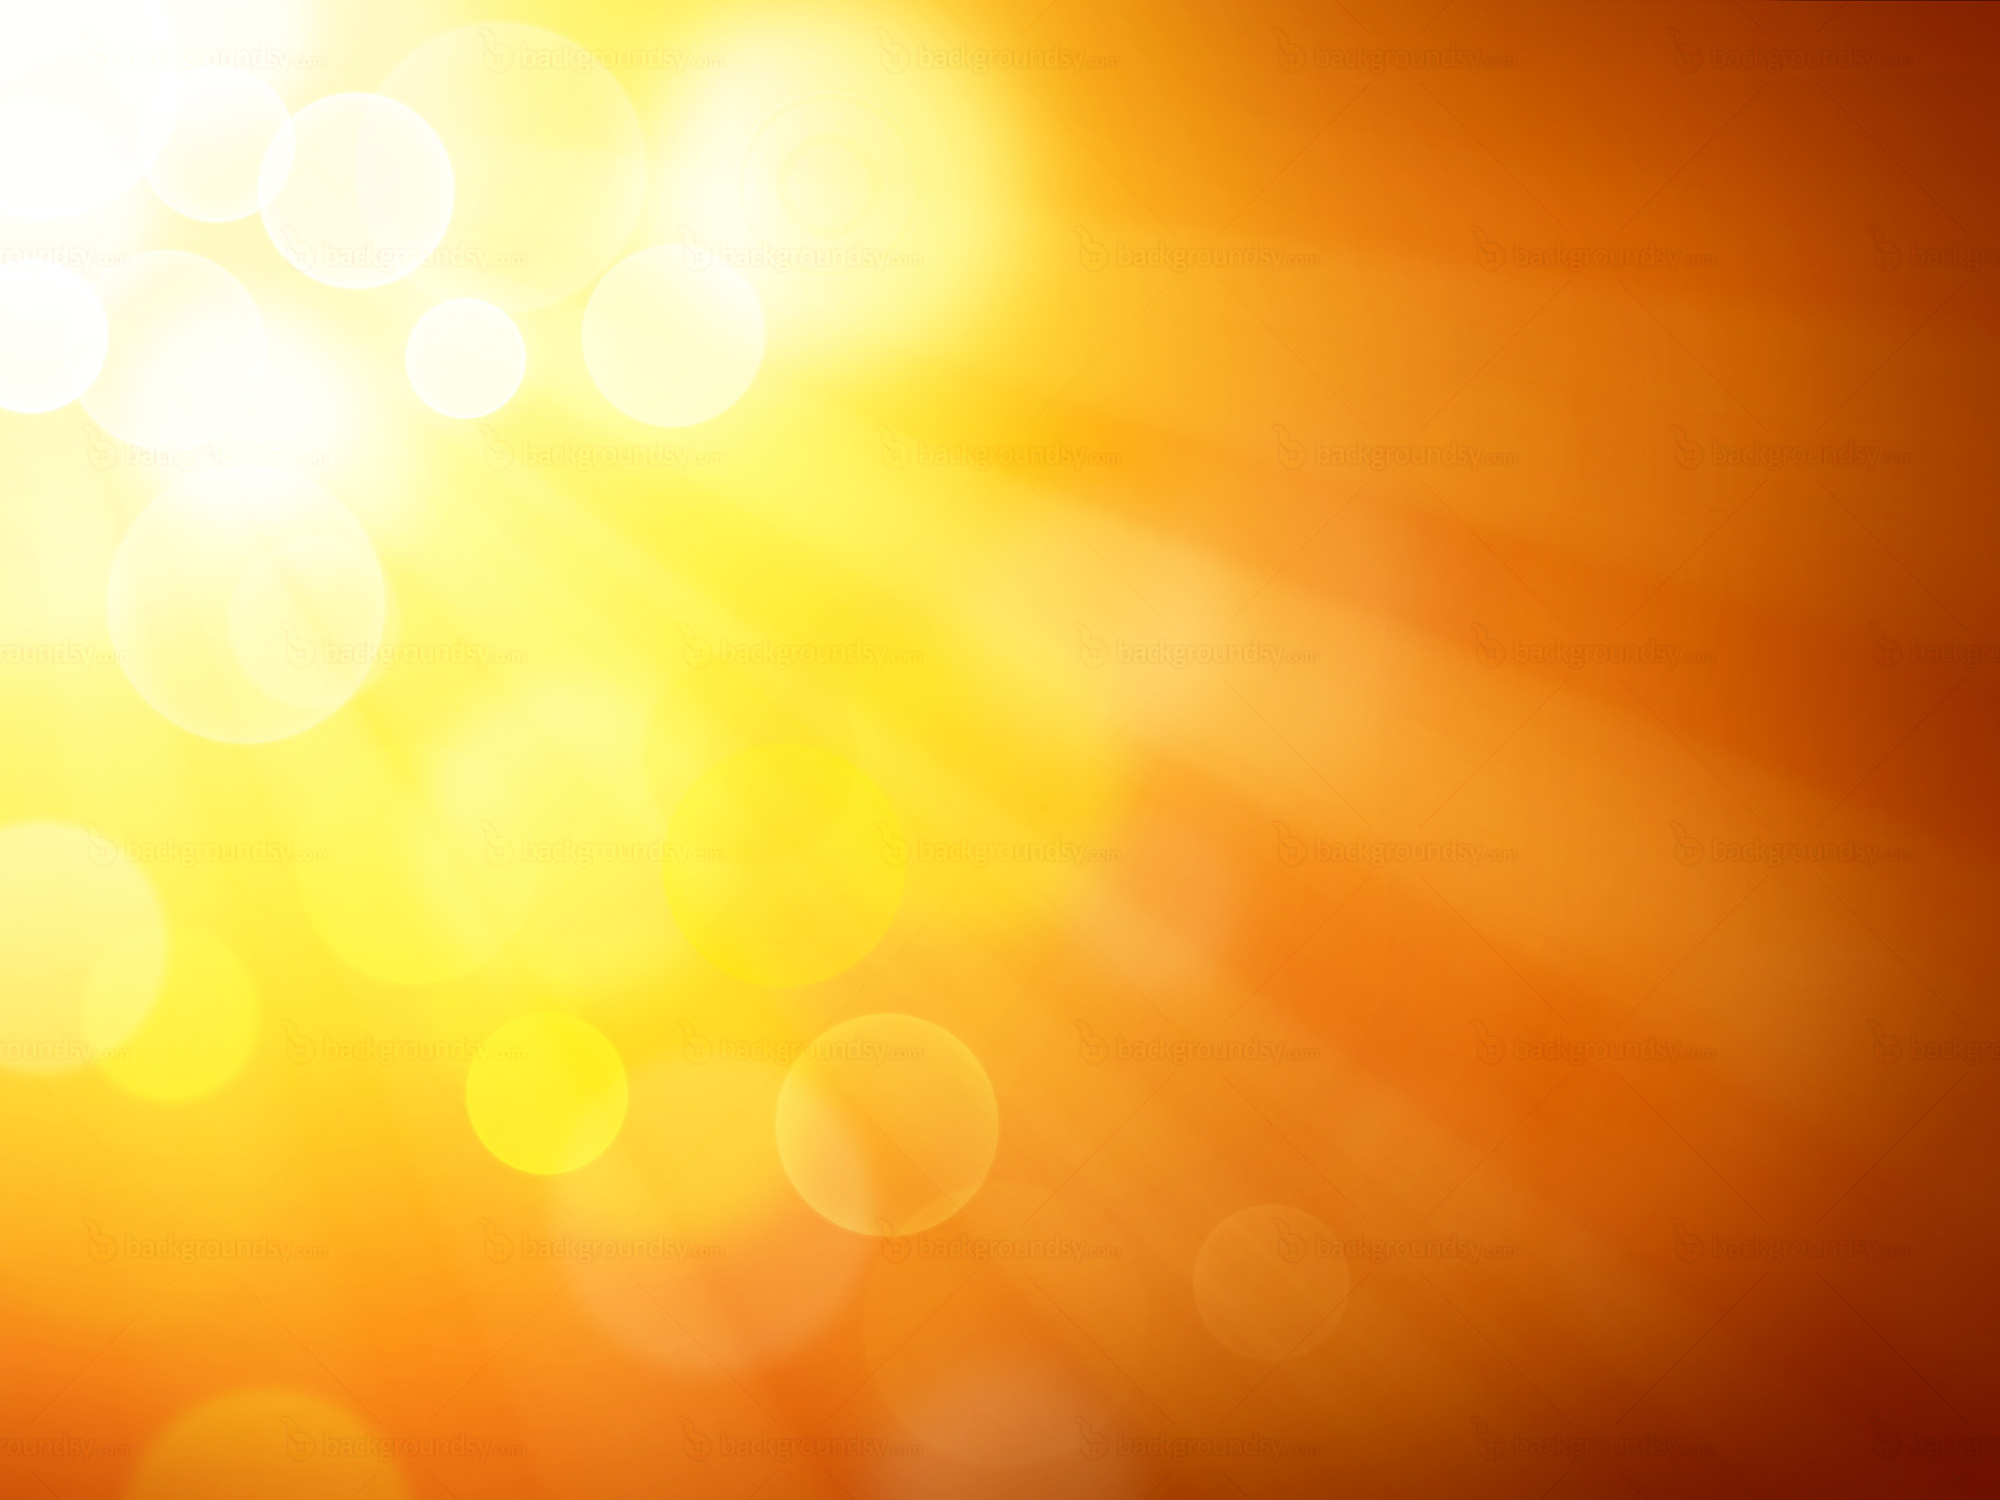 Hot sun rays | Backgroundsy.com for Yellow Light Rays Background  76uhy